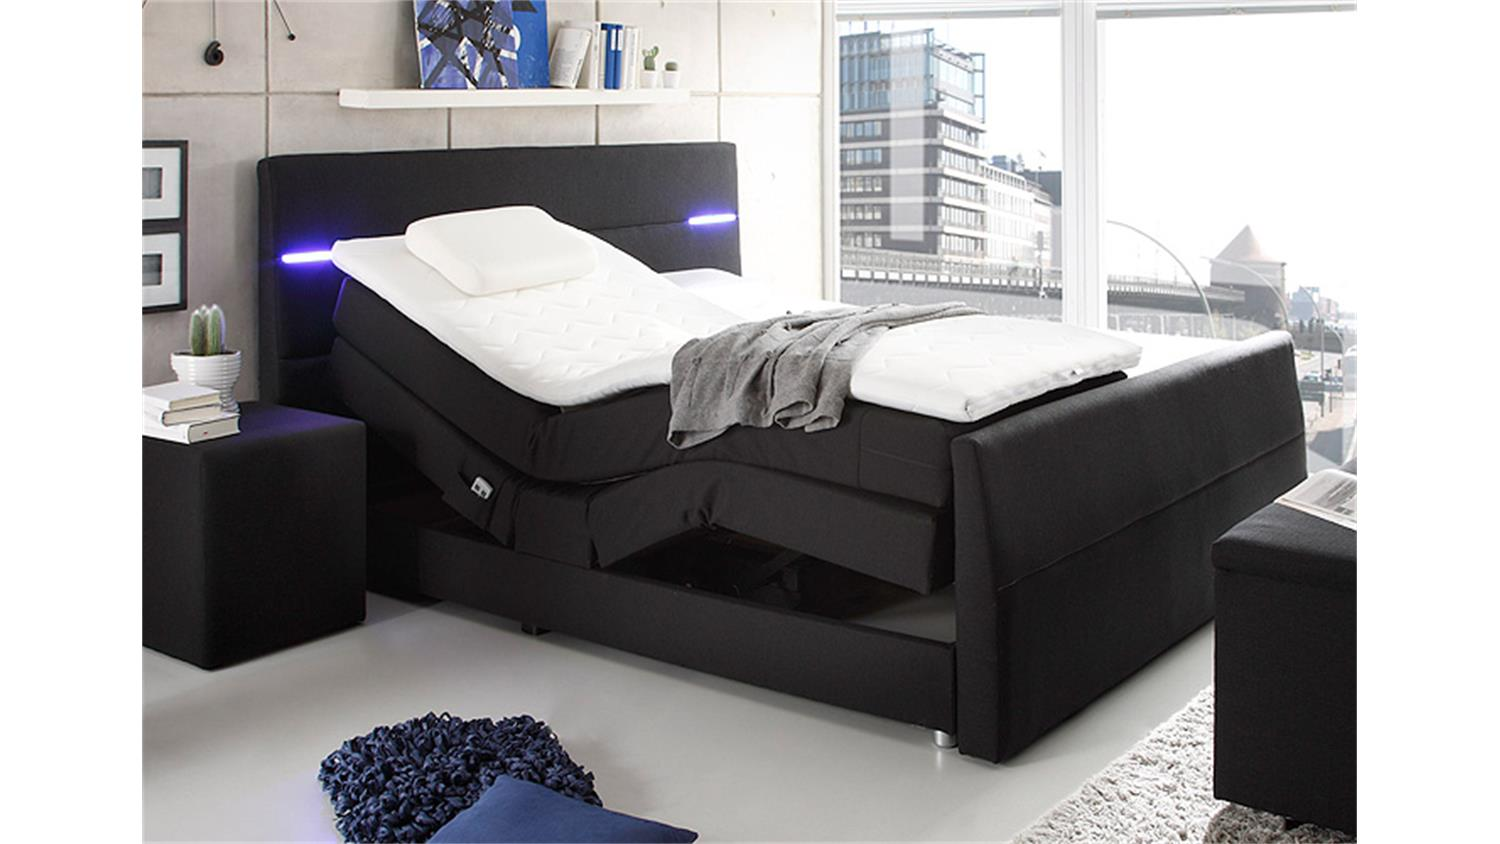 schlafzimmer g nstig online kaufen betten bei ikea betten bei ikea ikea hemnes lowboard joop. Black Bedroom Furniture Sets. Home Design Ideas